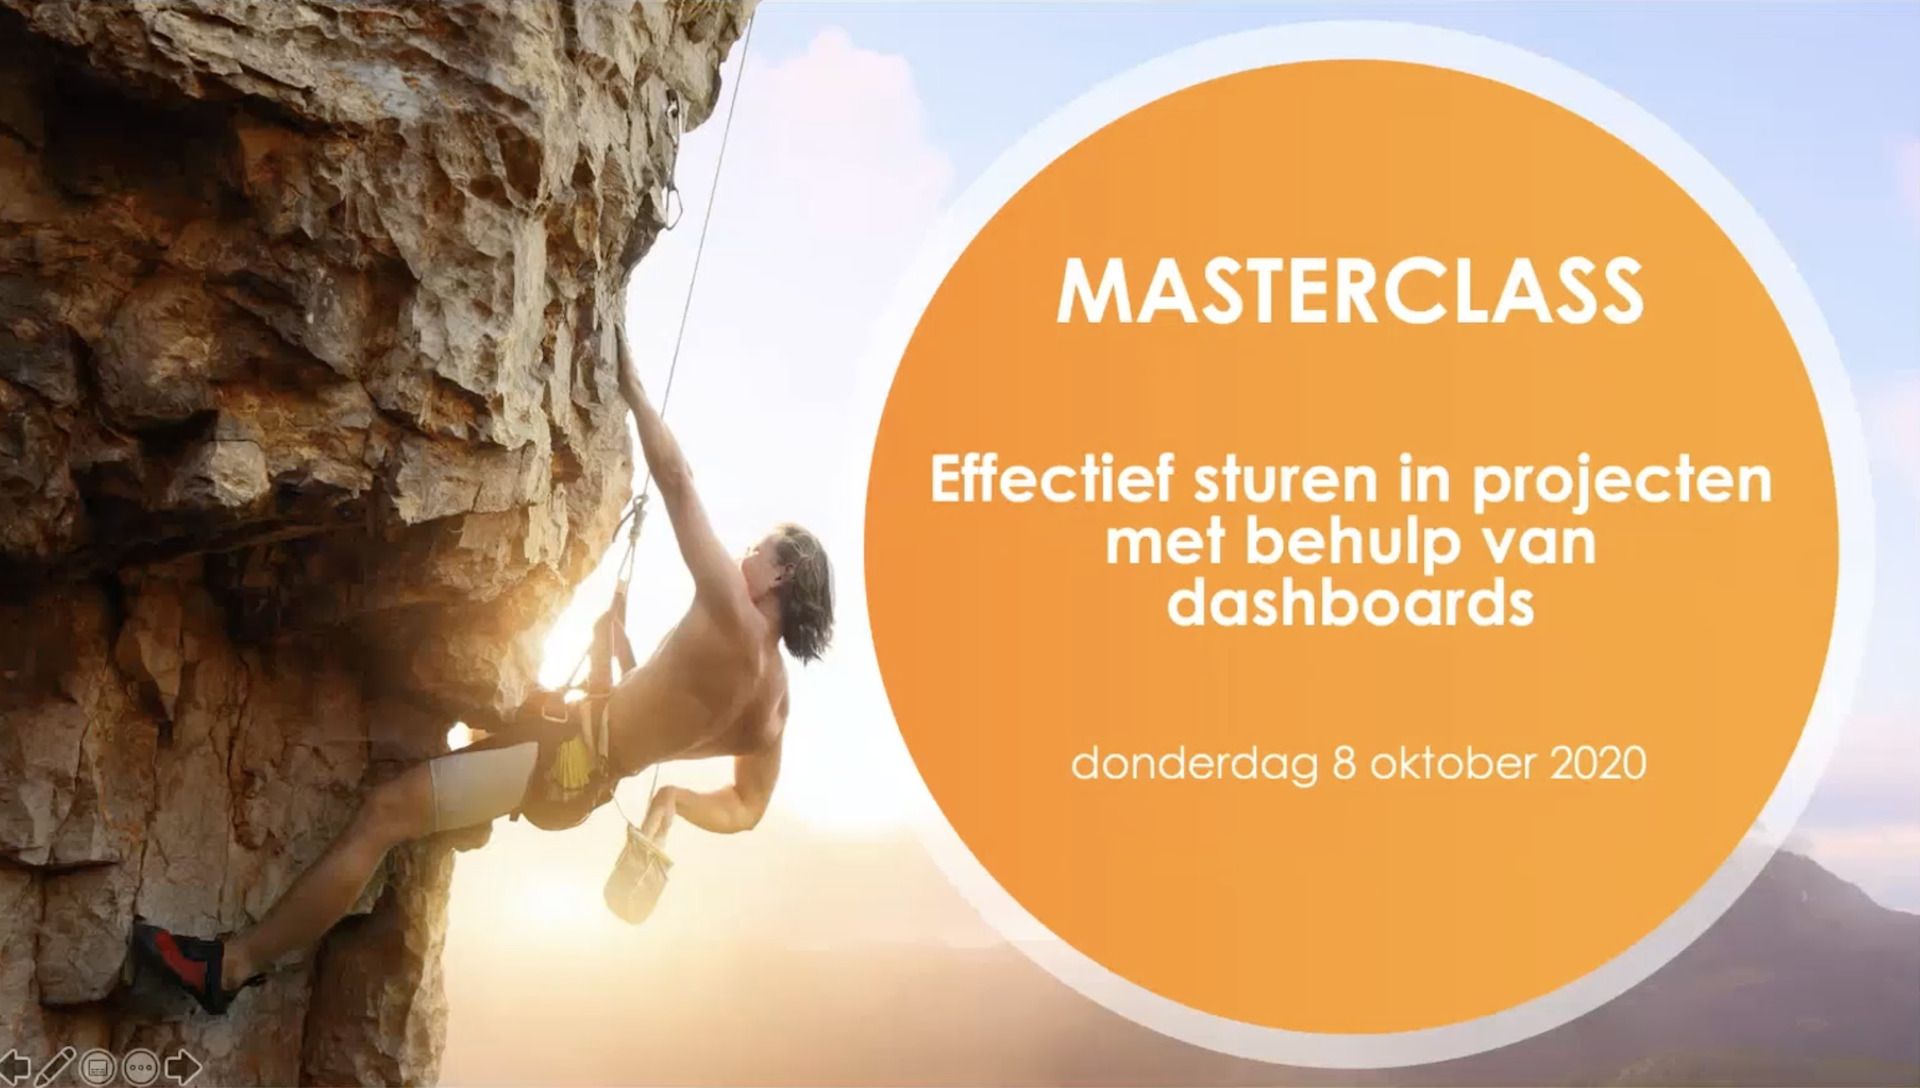 Highlights Masterclass - Effectief sturen in projecten met dashboards - Cratos Consulting.nl